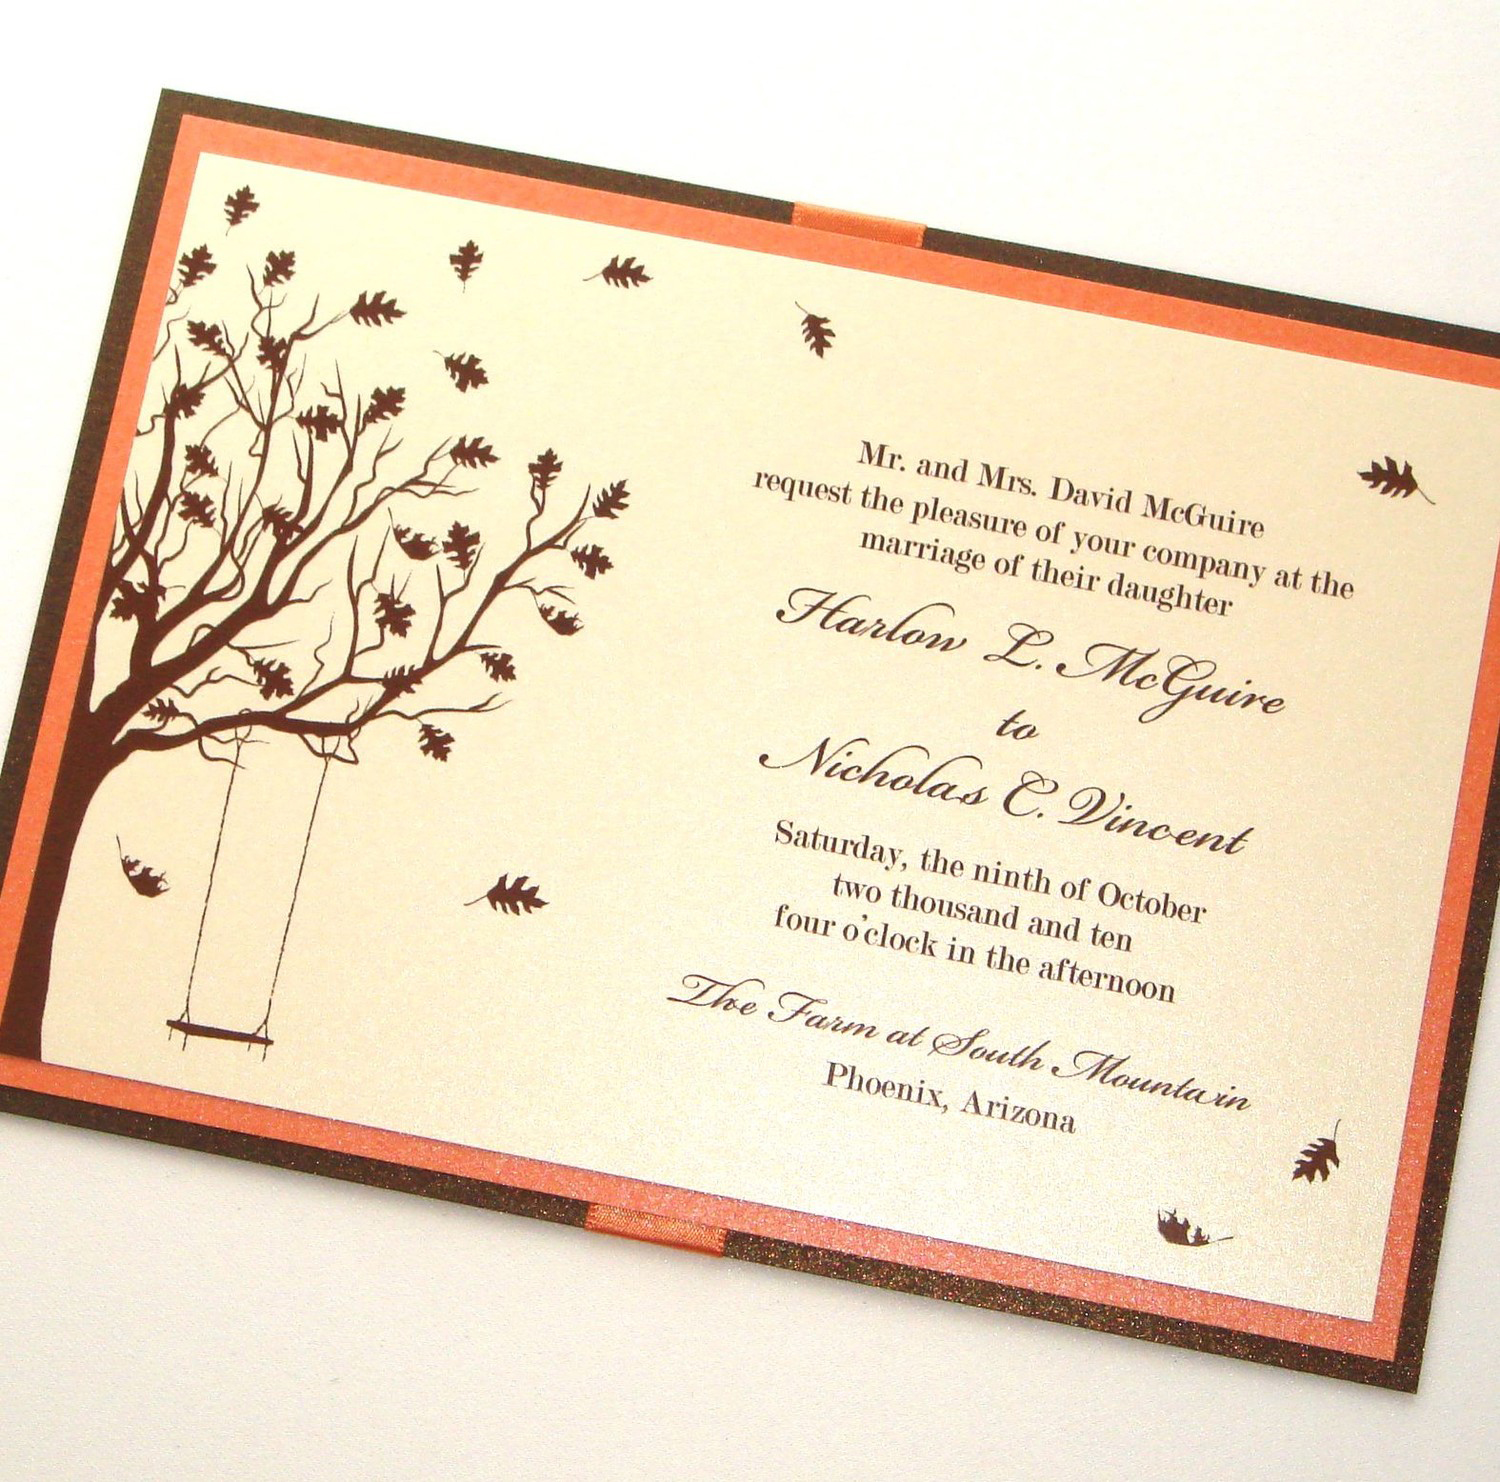 Wedding Invite Quotes: Quotes About Marriage For Wedding Invitations (16 Quotes